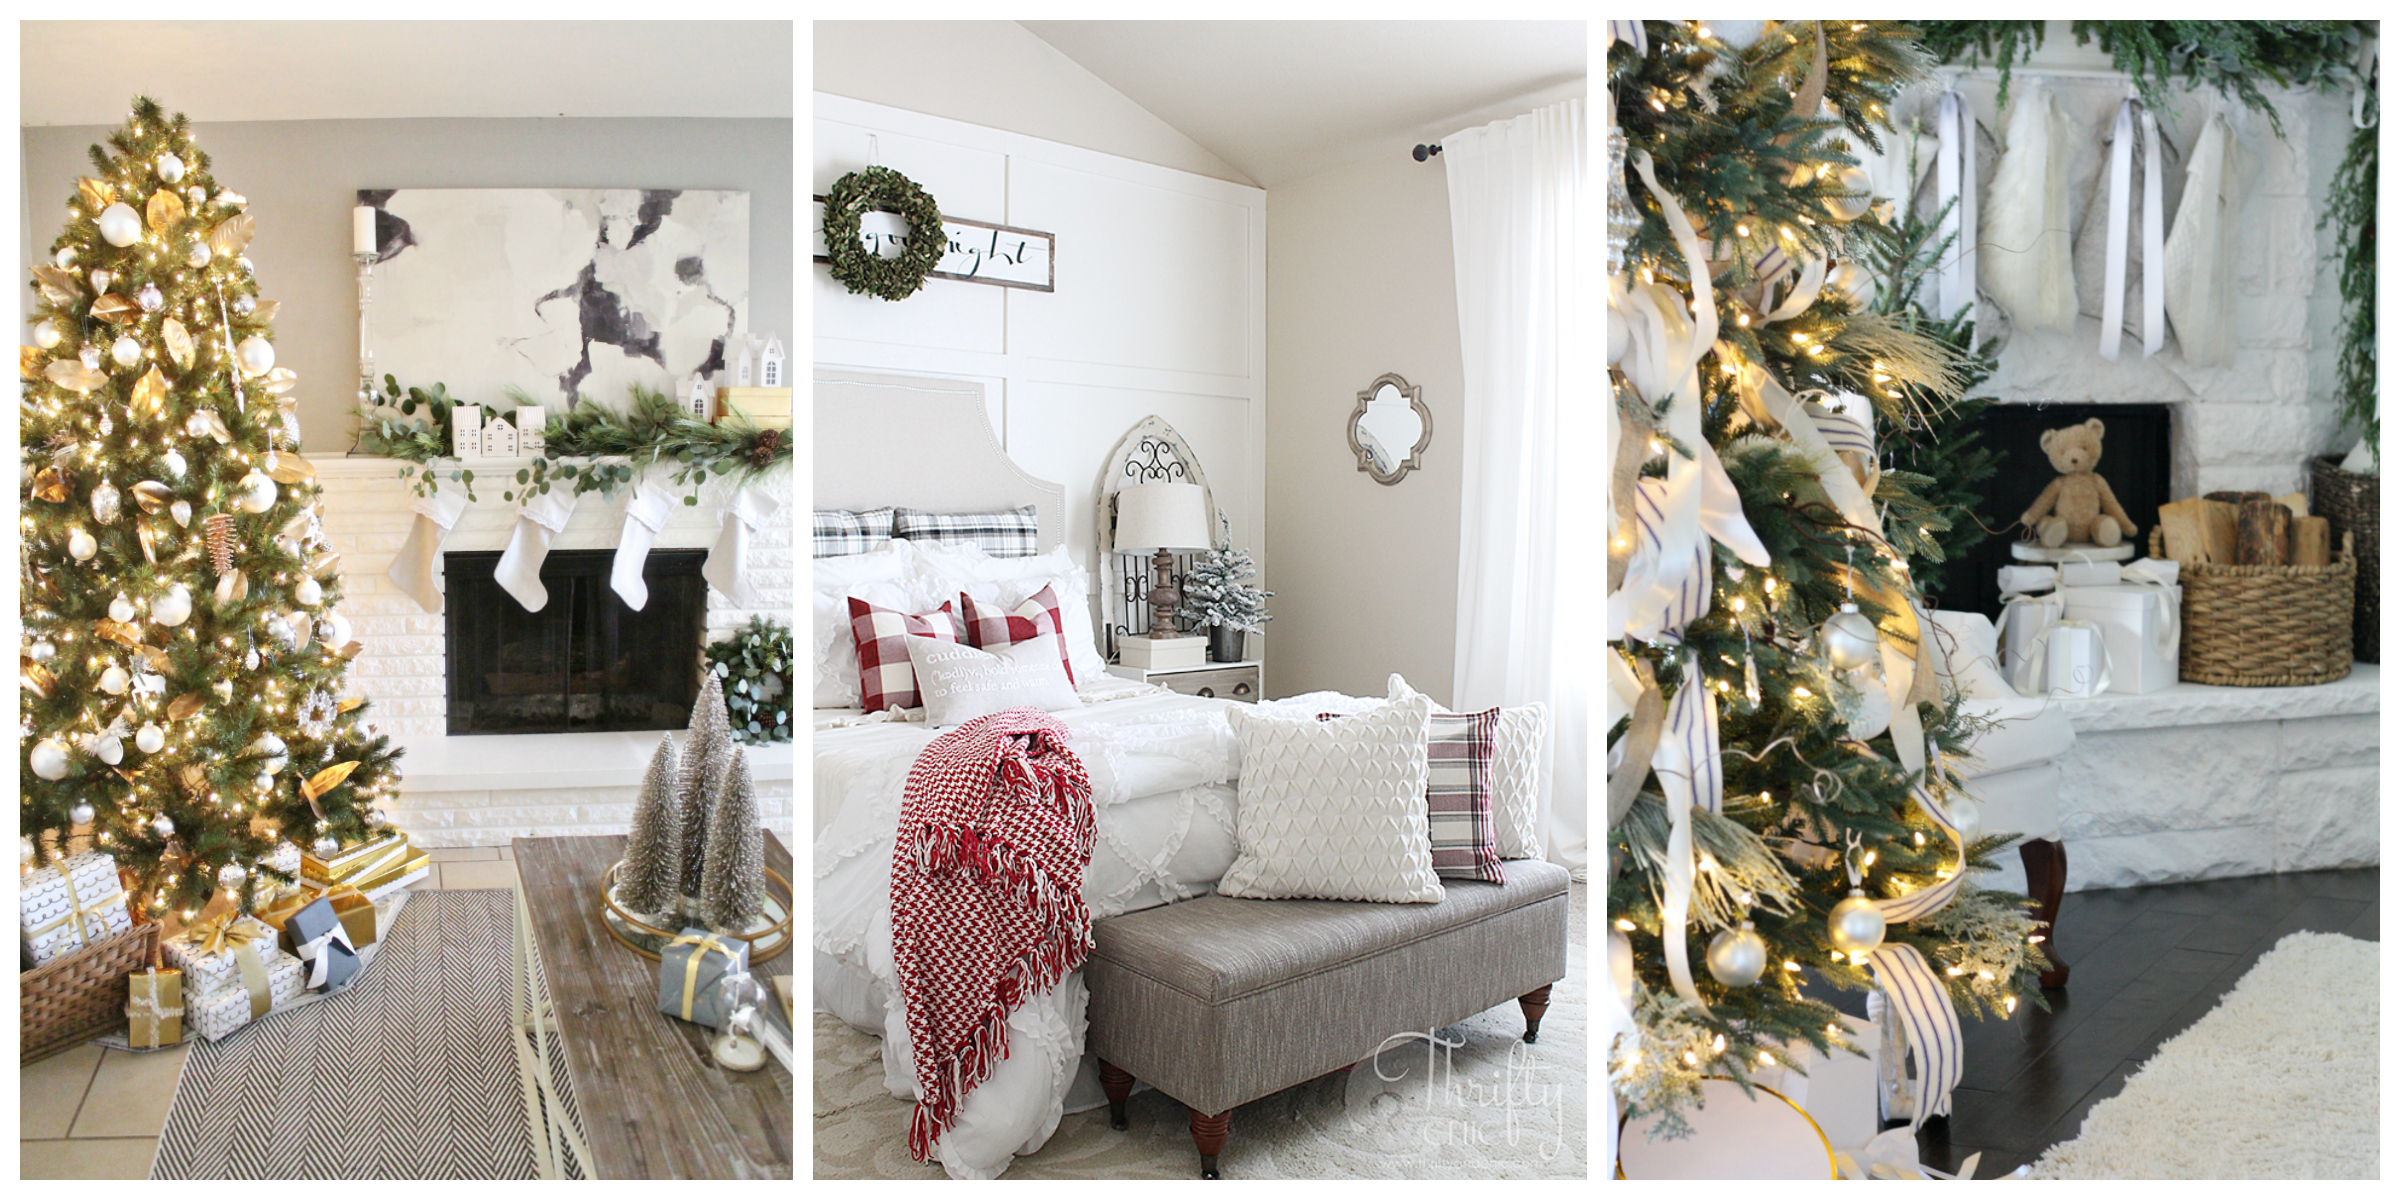 meaningful holiday home tour Dec 2nd